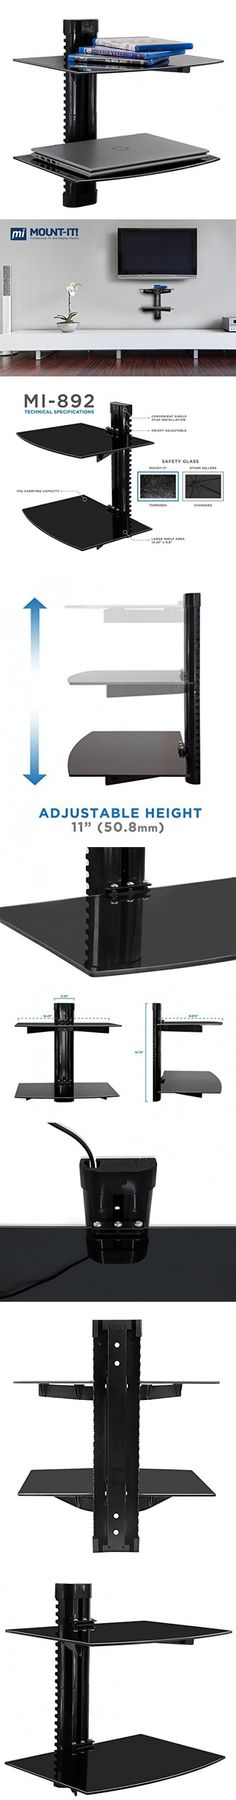 Mount-It! MI-892 Floating Wall Mounted Shelf Bracket Stand for AV Receiver, Component, Cable Box, Playstation4, Xbox1, DVD Player, Projector, 35.2 Lbs Capacity, 2 Shelves, Tinted Tempered Glass